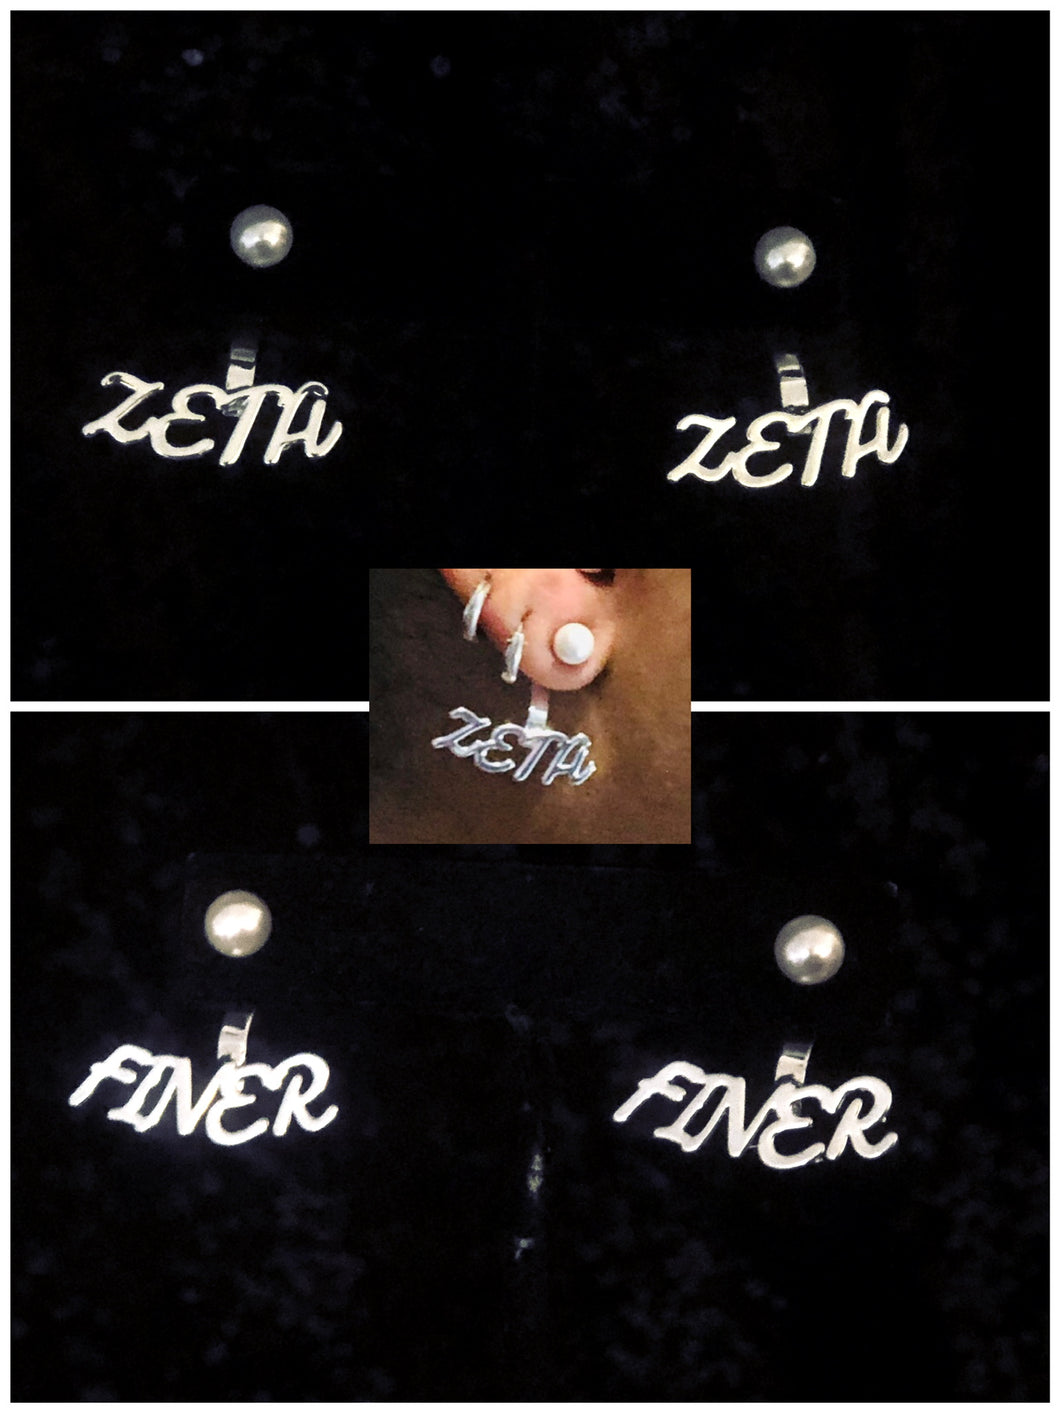 Finer Zeta 2 Piece Pearl Earrings